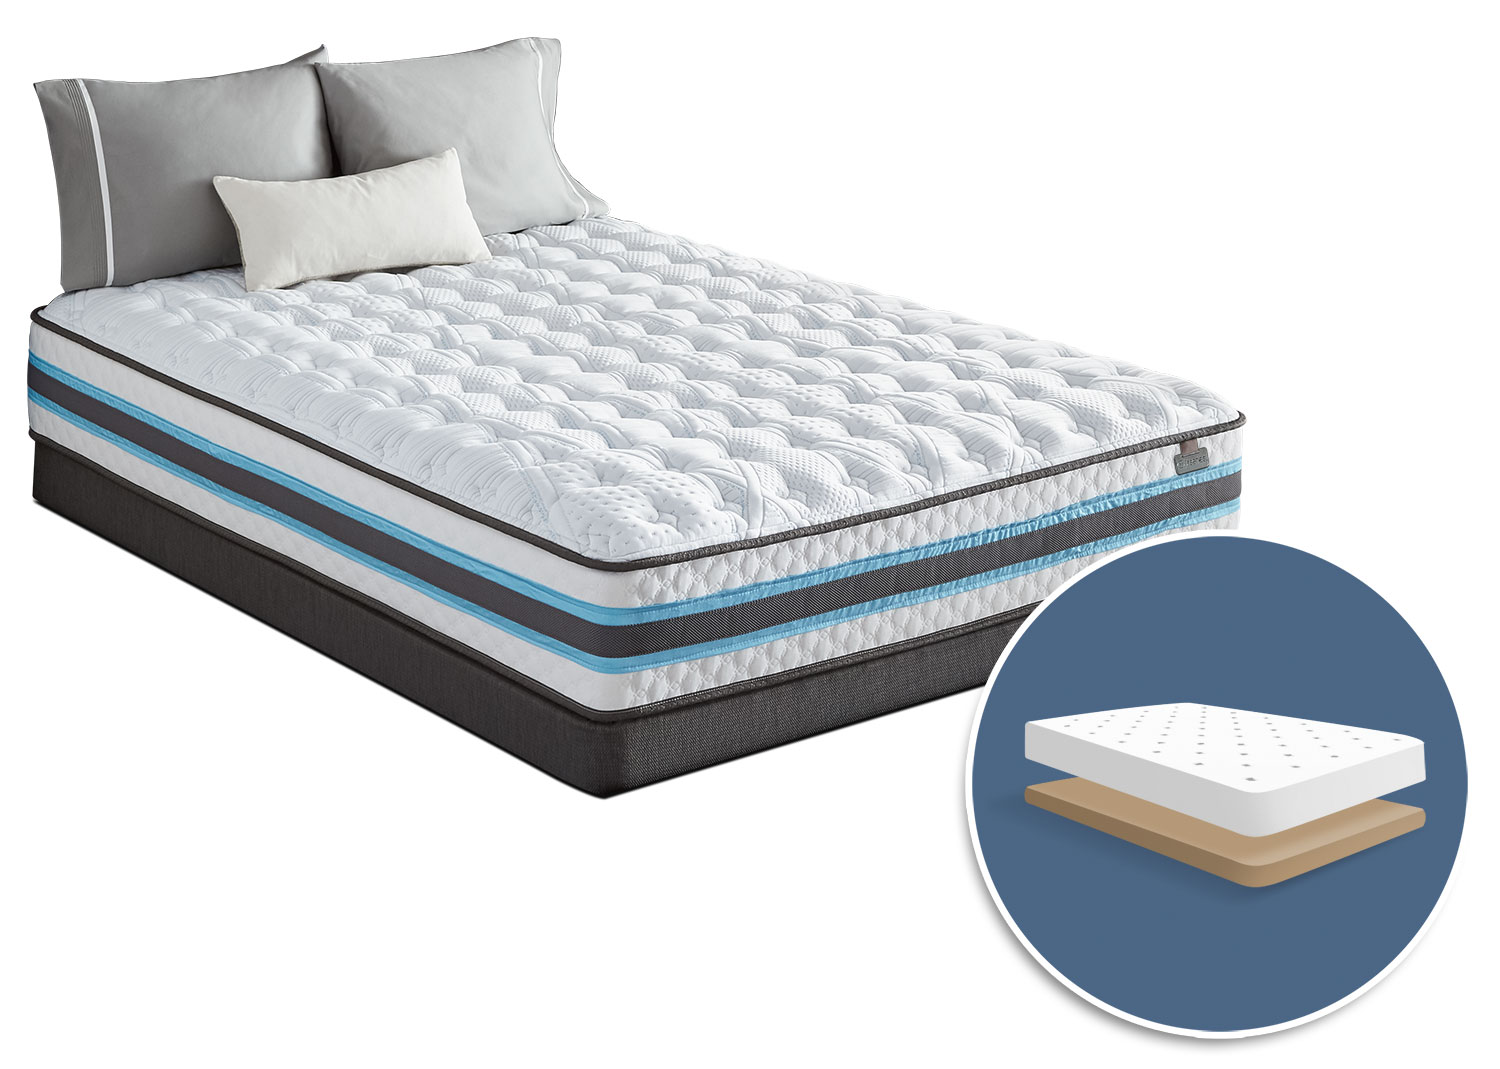 Serta iSeries® Atmosphere Tight-Top Plush Low-Profile Full Mattress Set